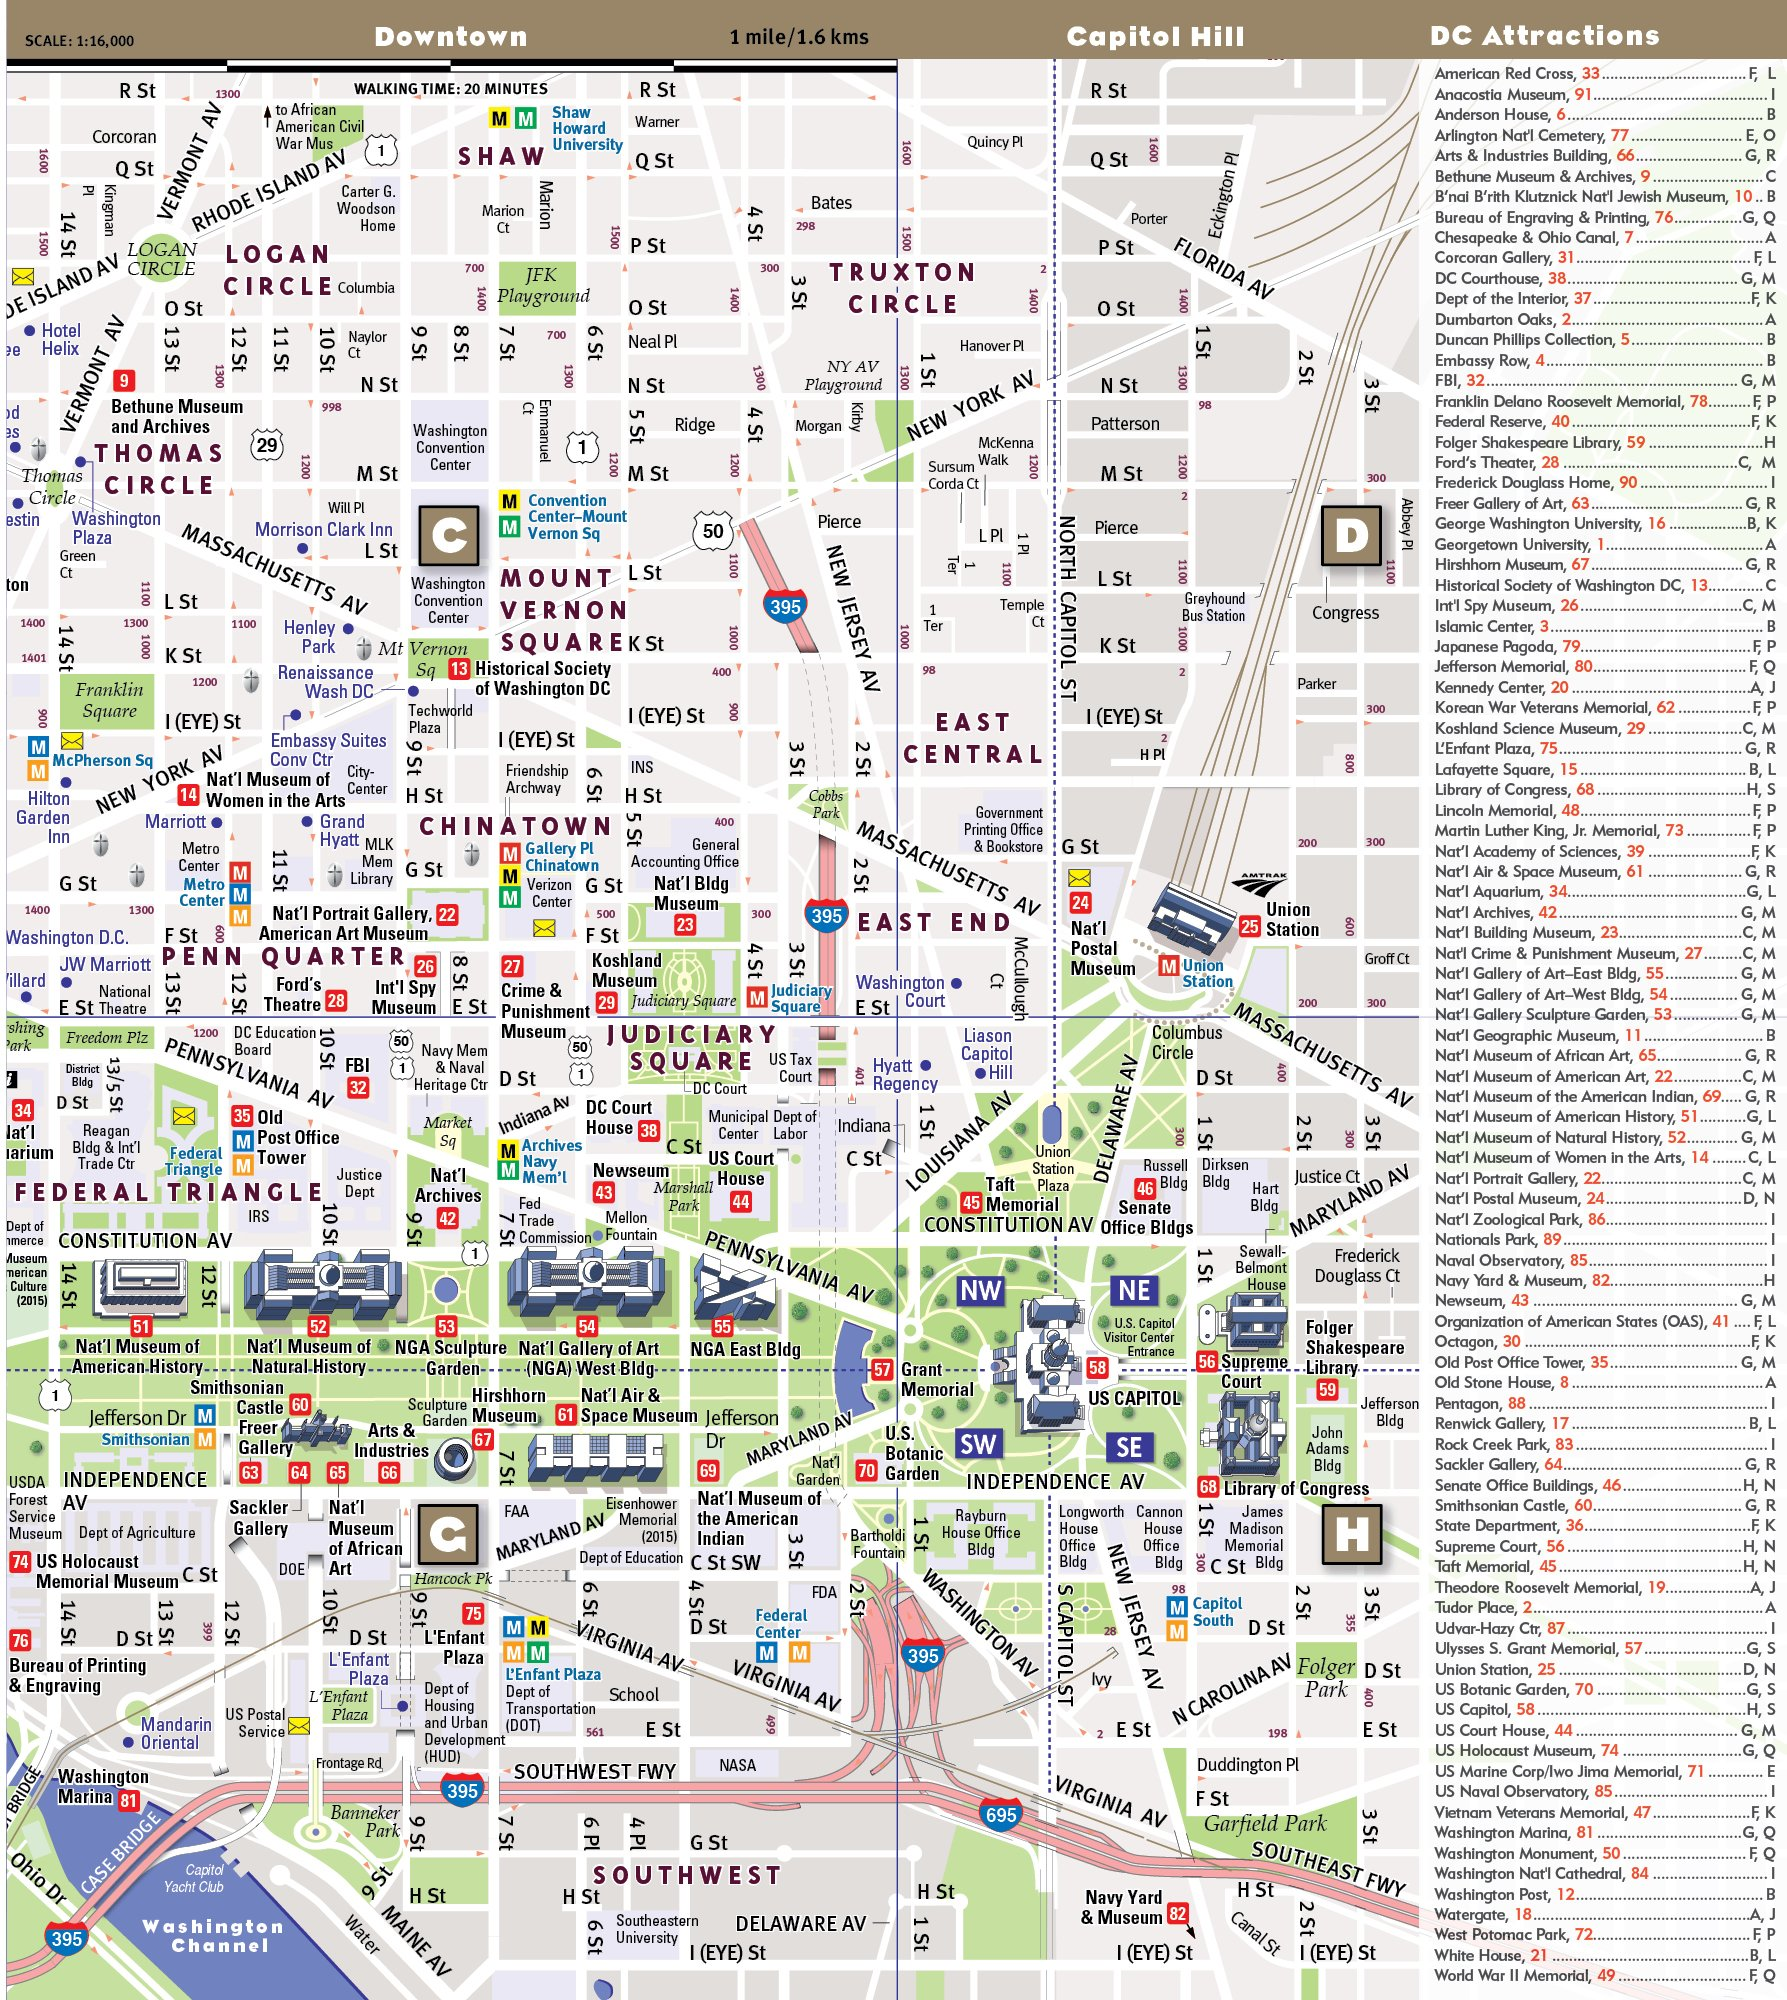 photo relating to Printable Map of Washington Dc Mall identified as MallSmart Washington DC Map by means of VanDam -- Laminated Town